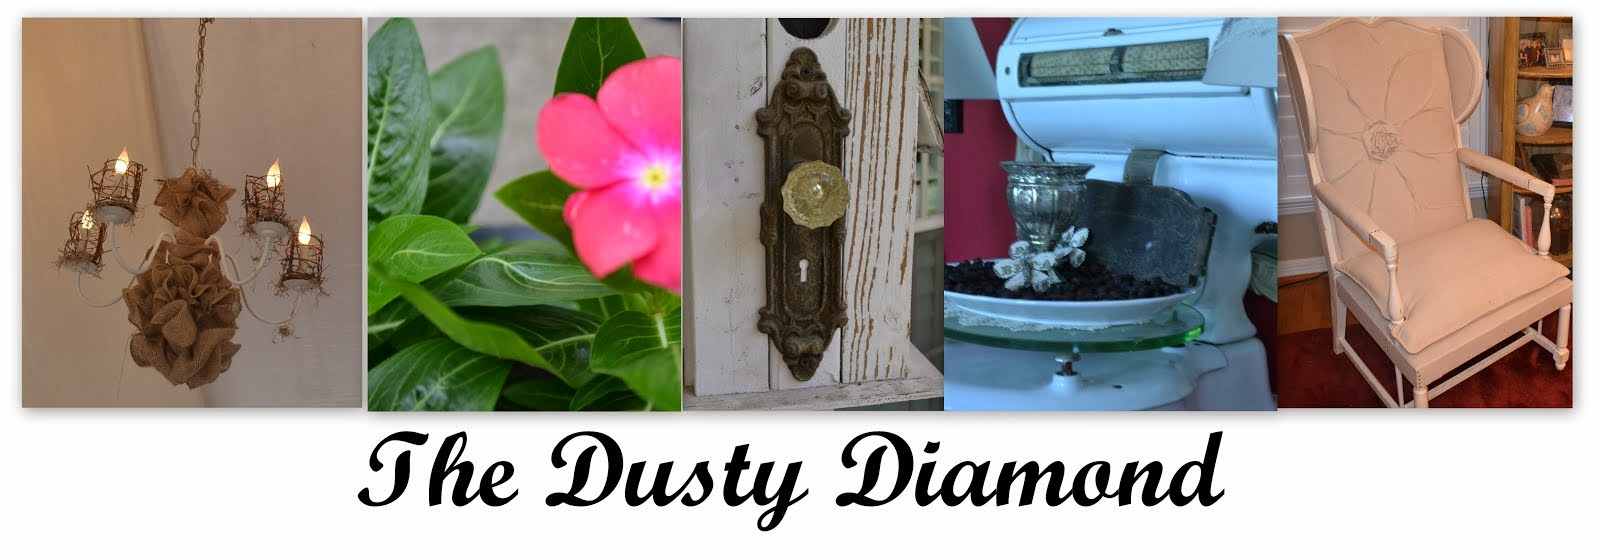 The Dusty Diamond